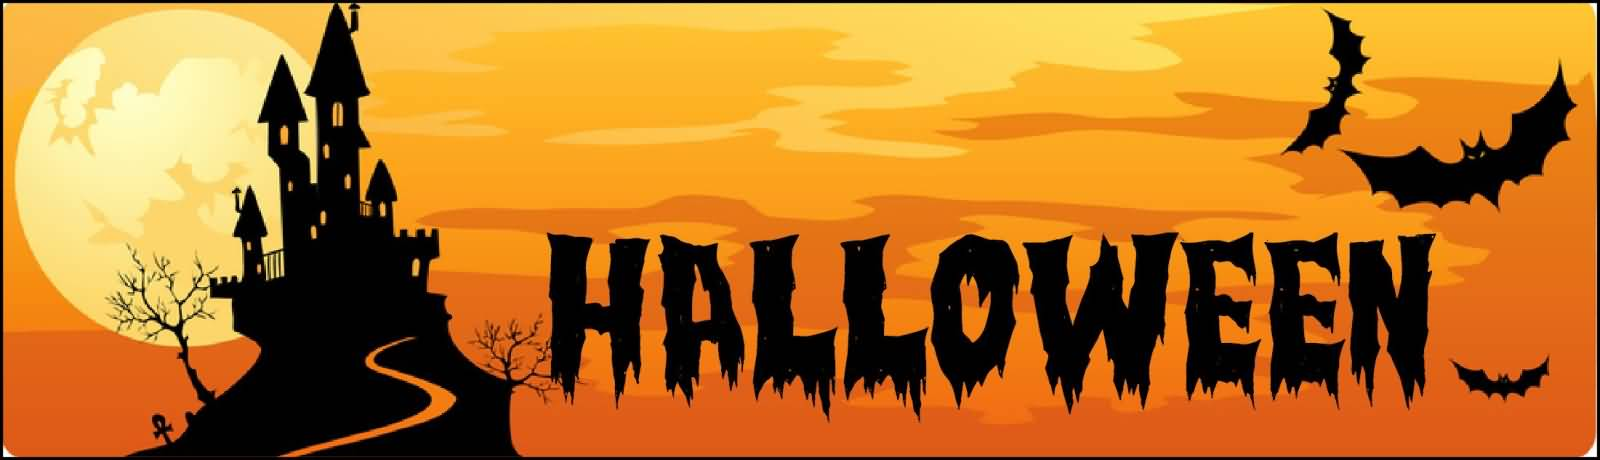 halloween wishes facebook cover picture - Halloween Cover Pictures